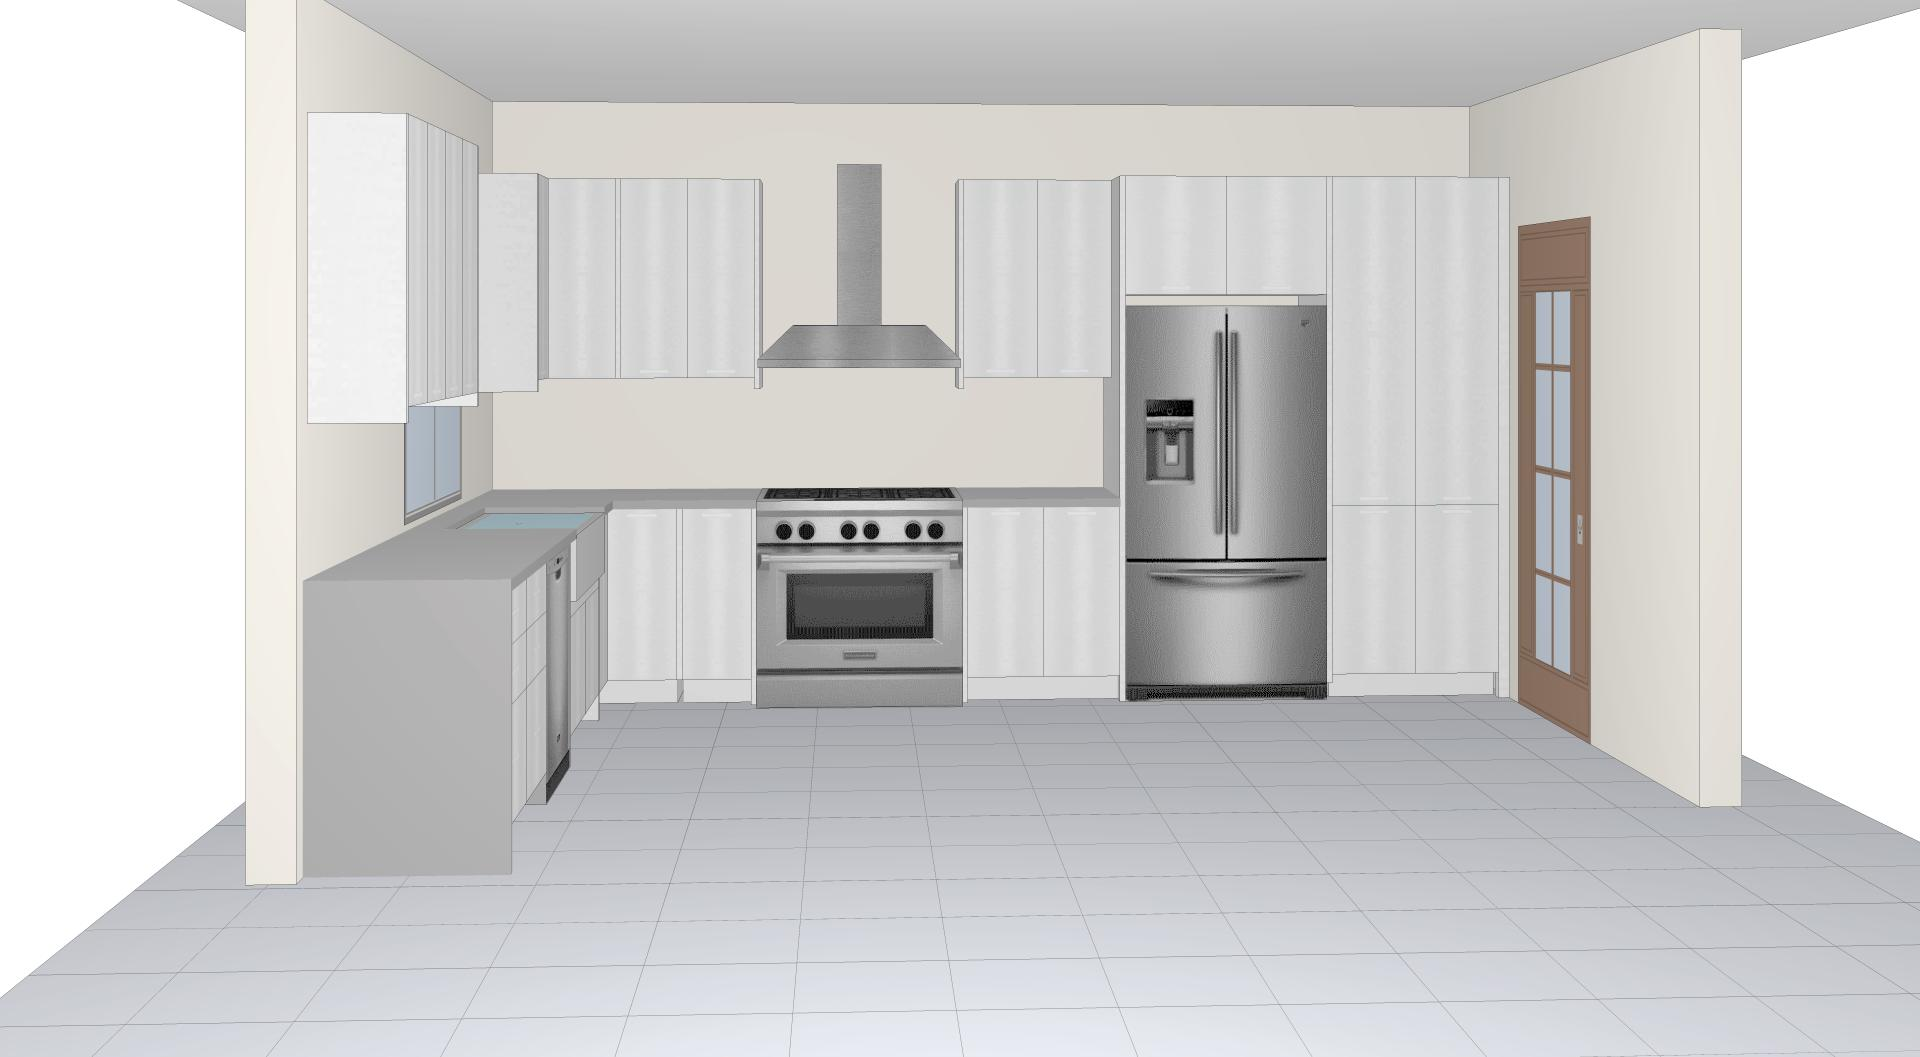 How To Design The Dream Kitchen White Gloss Euro Cabinets